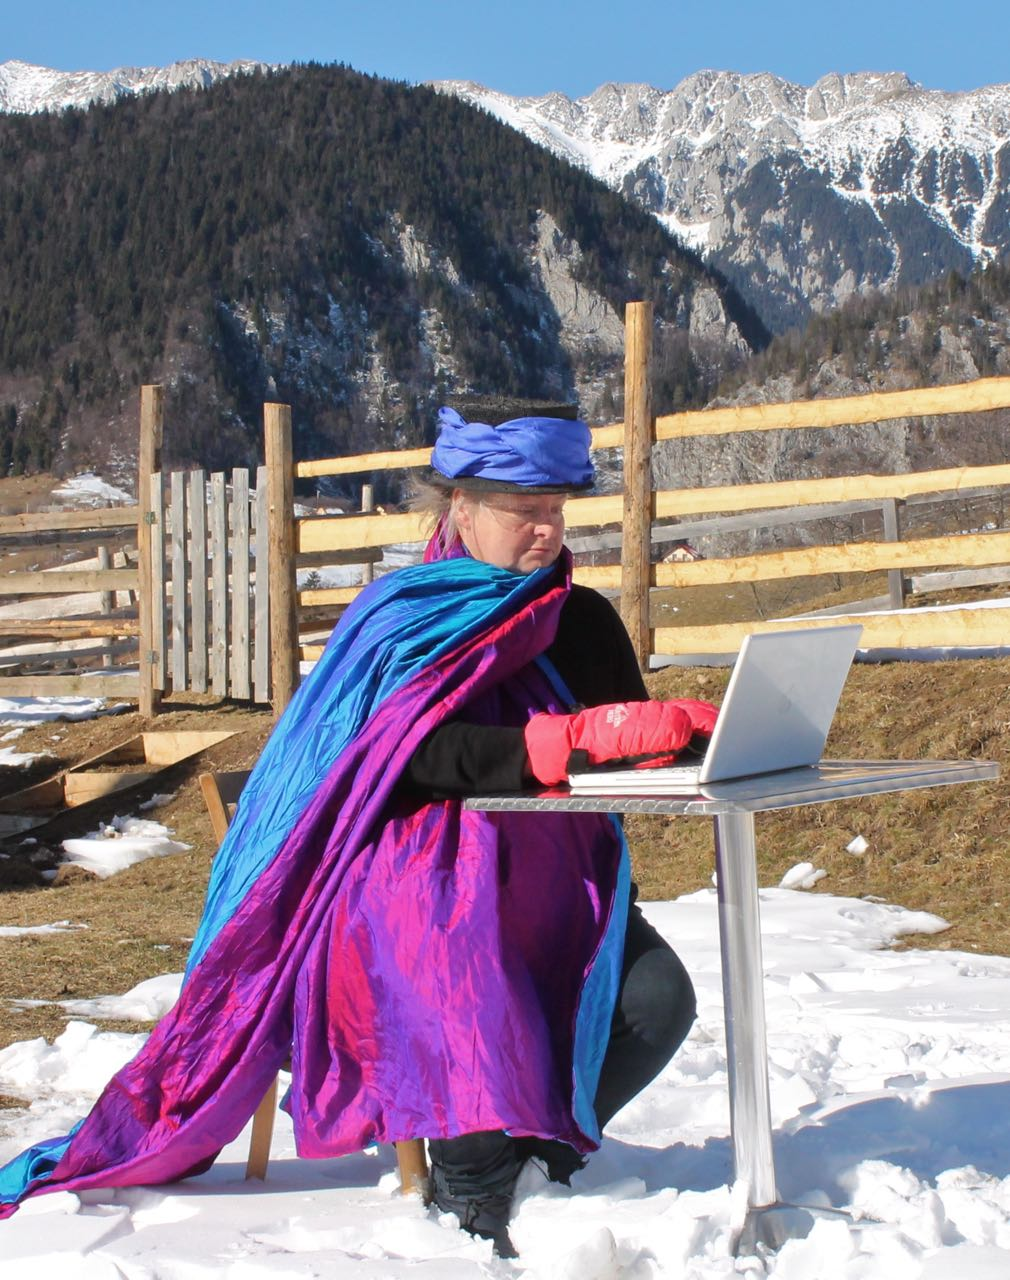 Author typing in snow, mountains, gloves